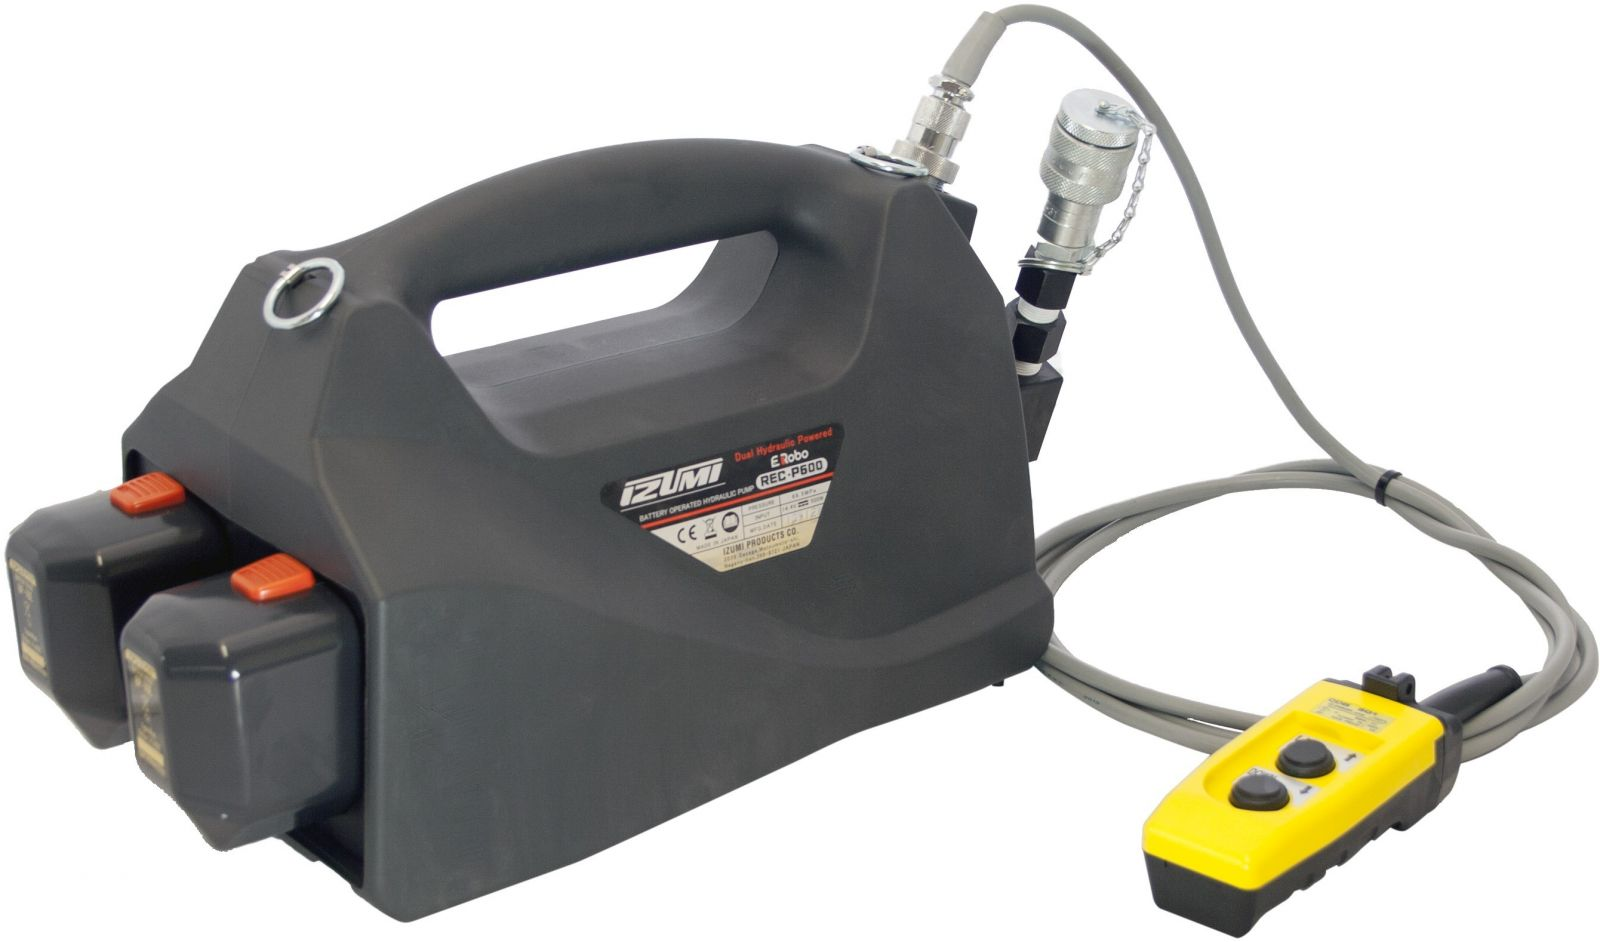 http://vhcorp.com.vn/upload/images/IZUMI/Battery_Operated_Tools_Battery_Operated_Pump_REC_P600.jpg